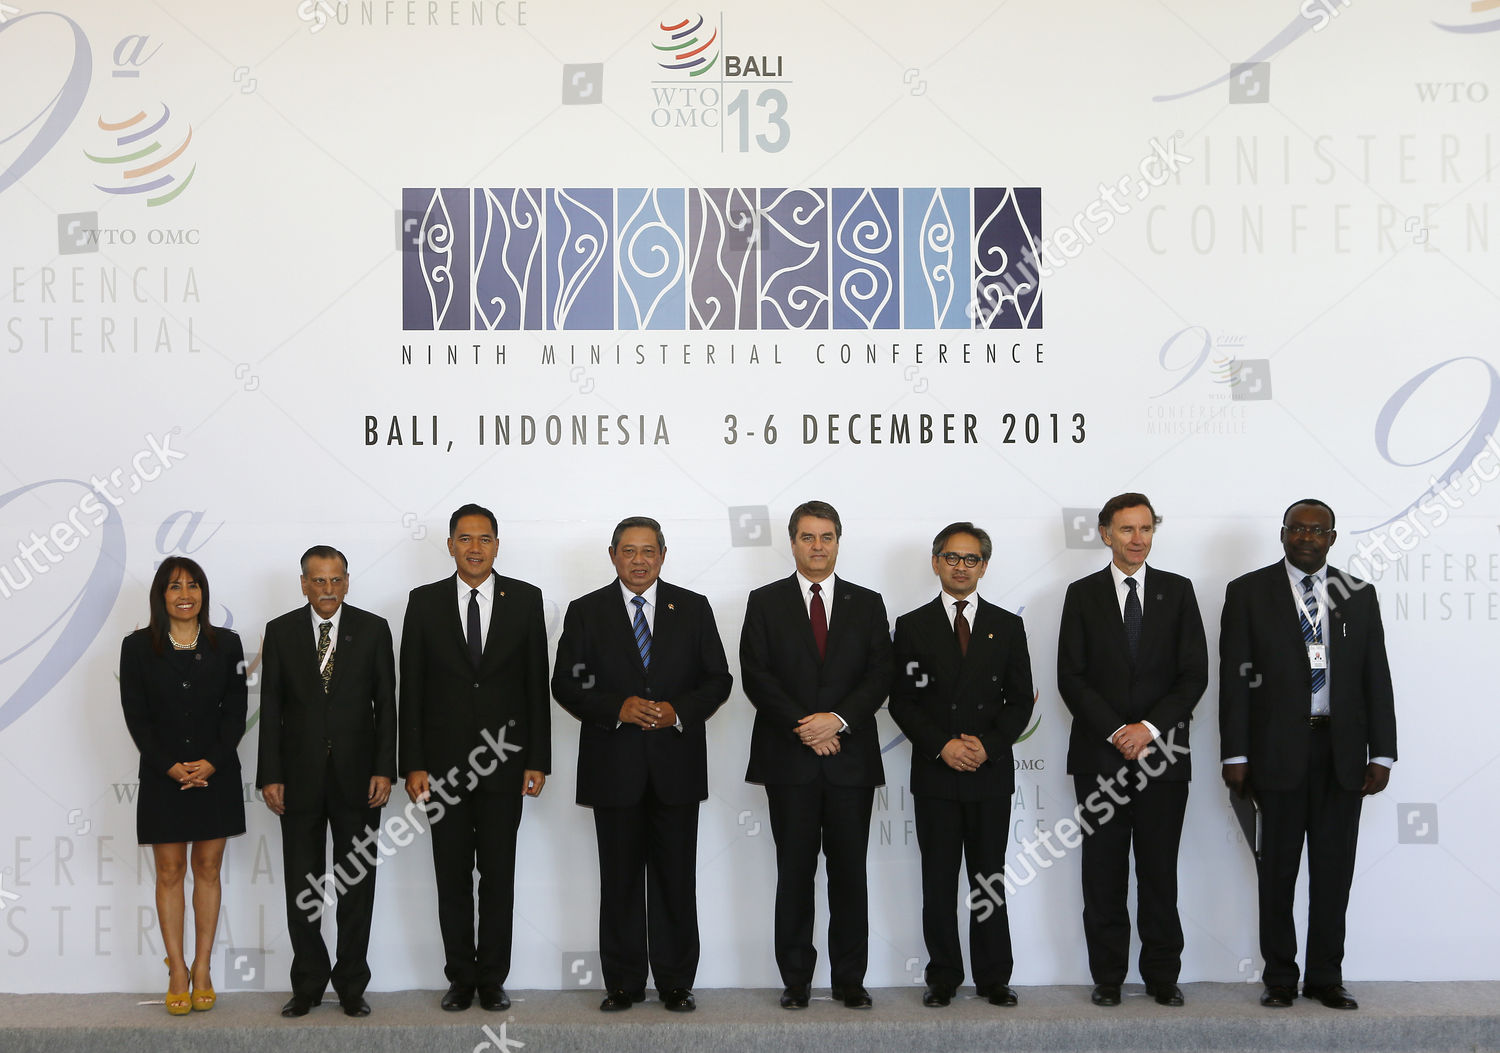 Stock photo of Indonesia Bali Wto Ministerial Conference - Dec 2013